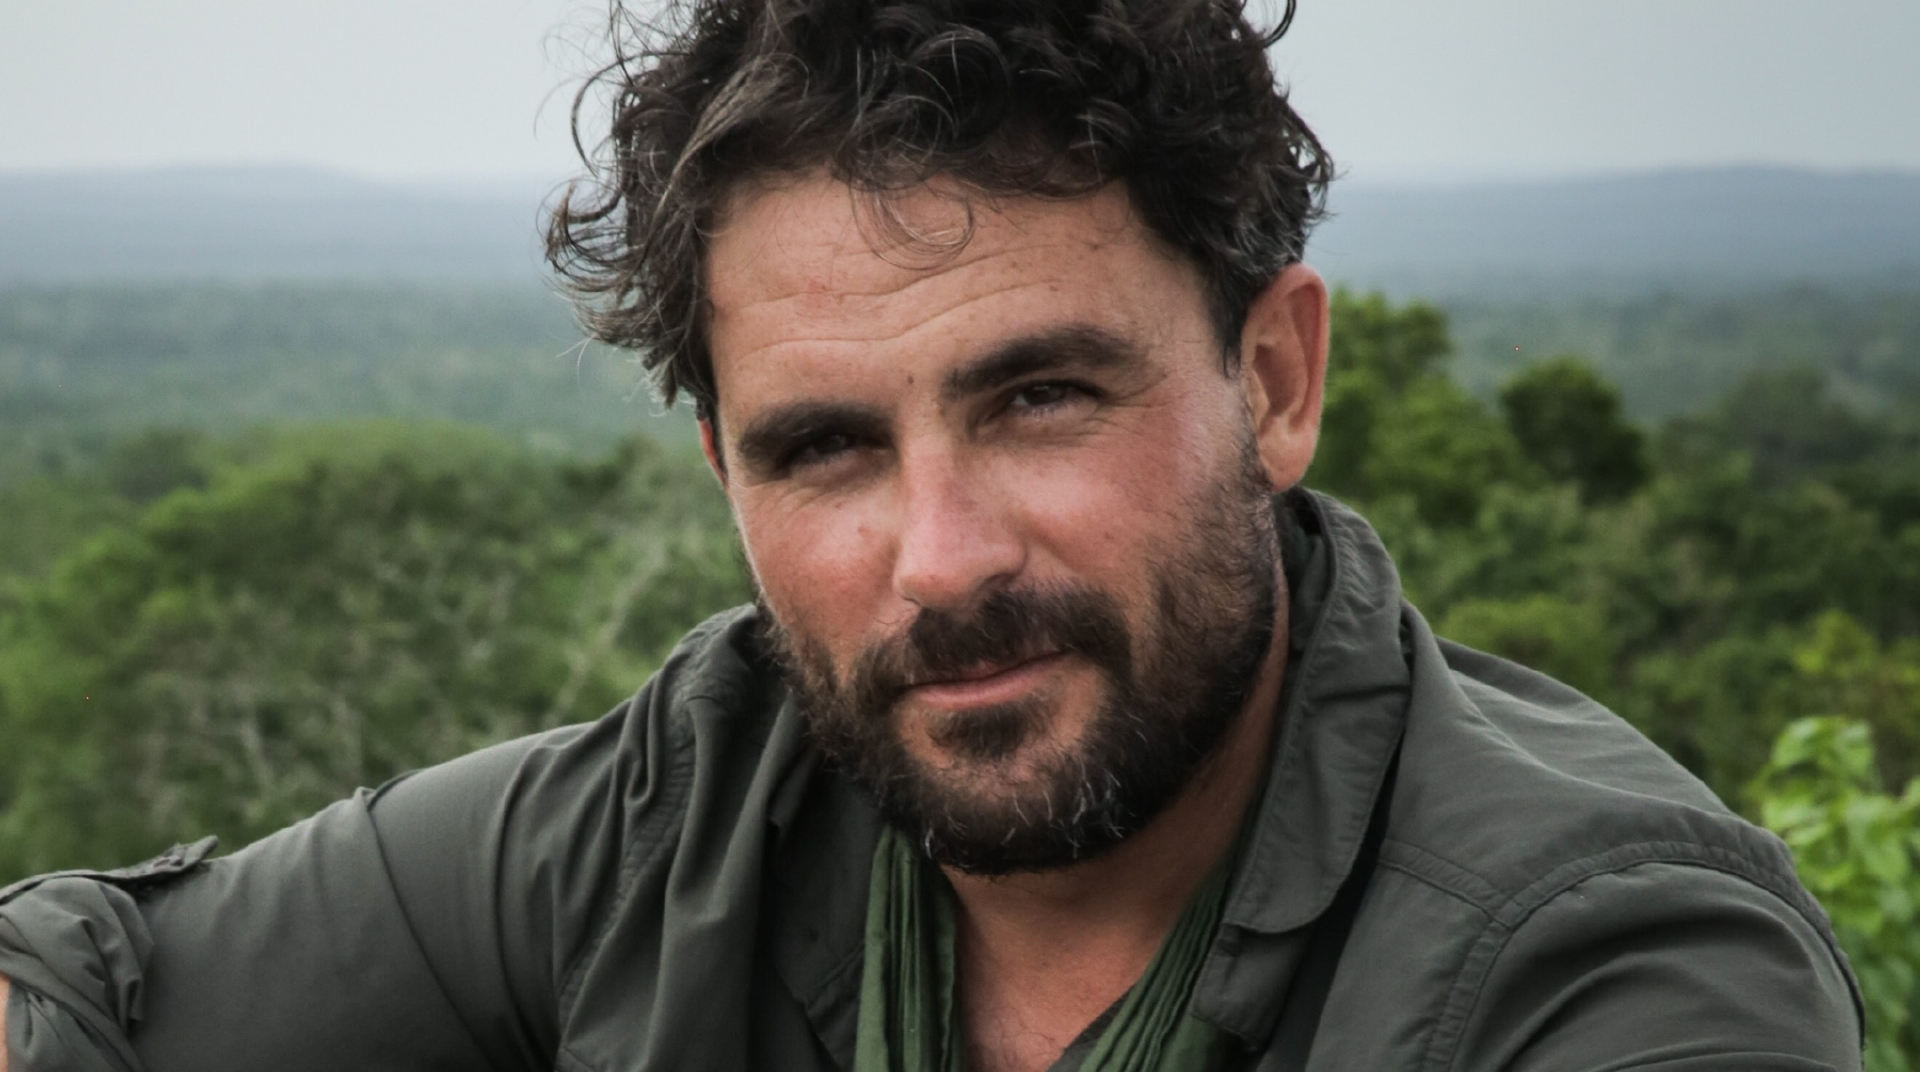 Levison Wood - a true adventurer.